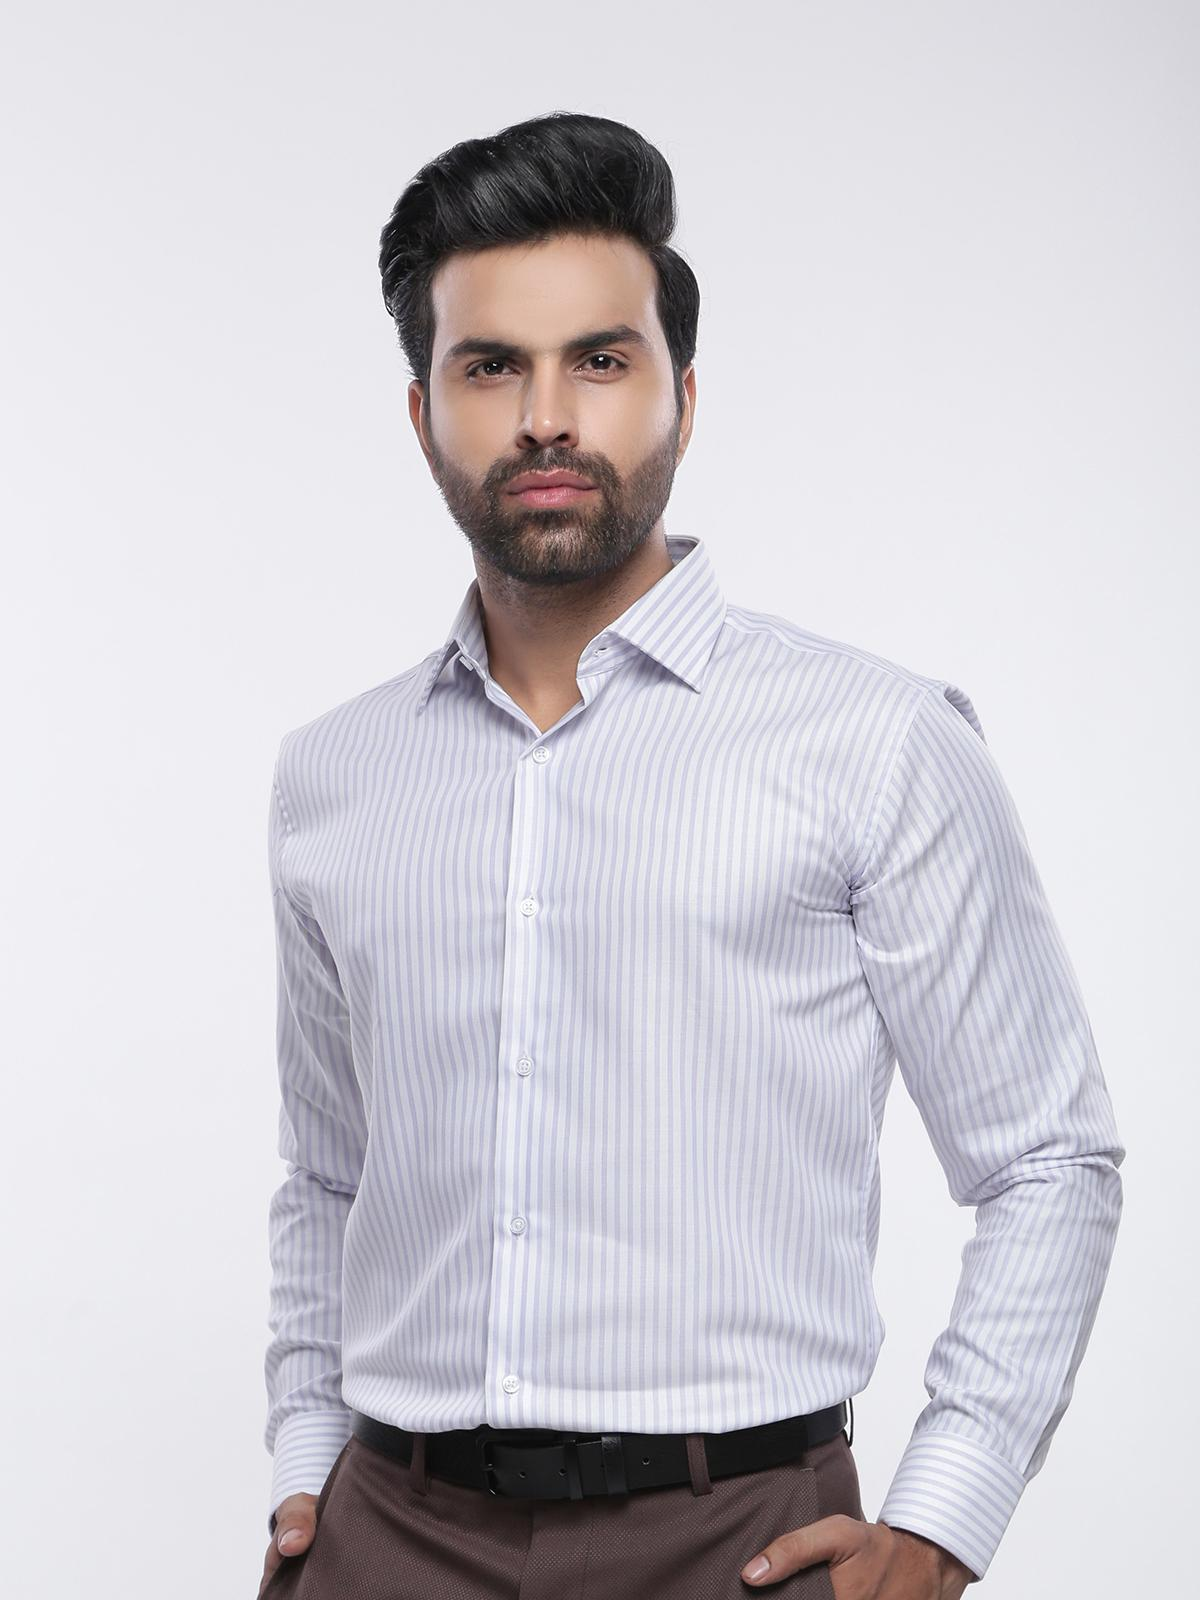 The Cress Striped Purple and White Slim Fit Formal Shirt for Men